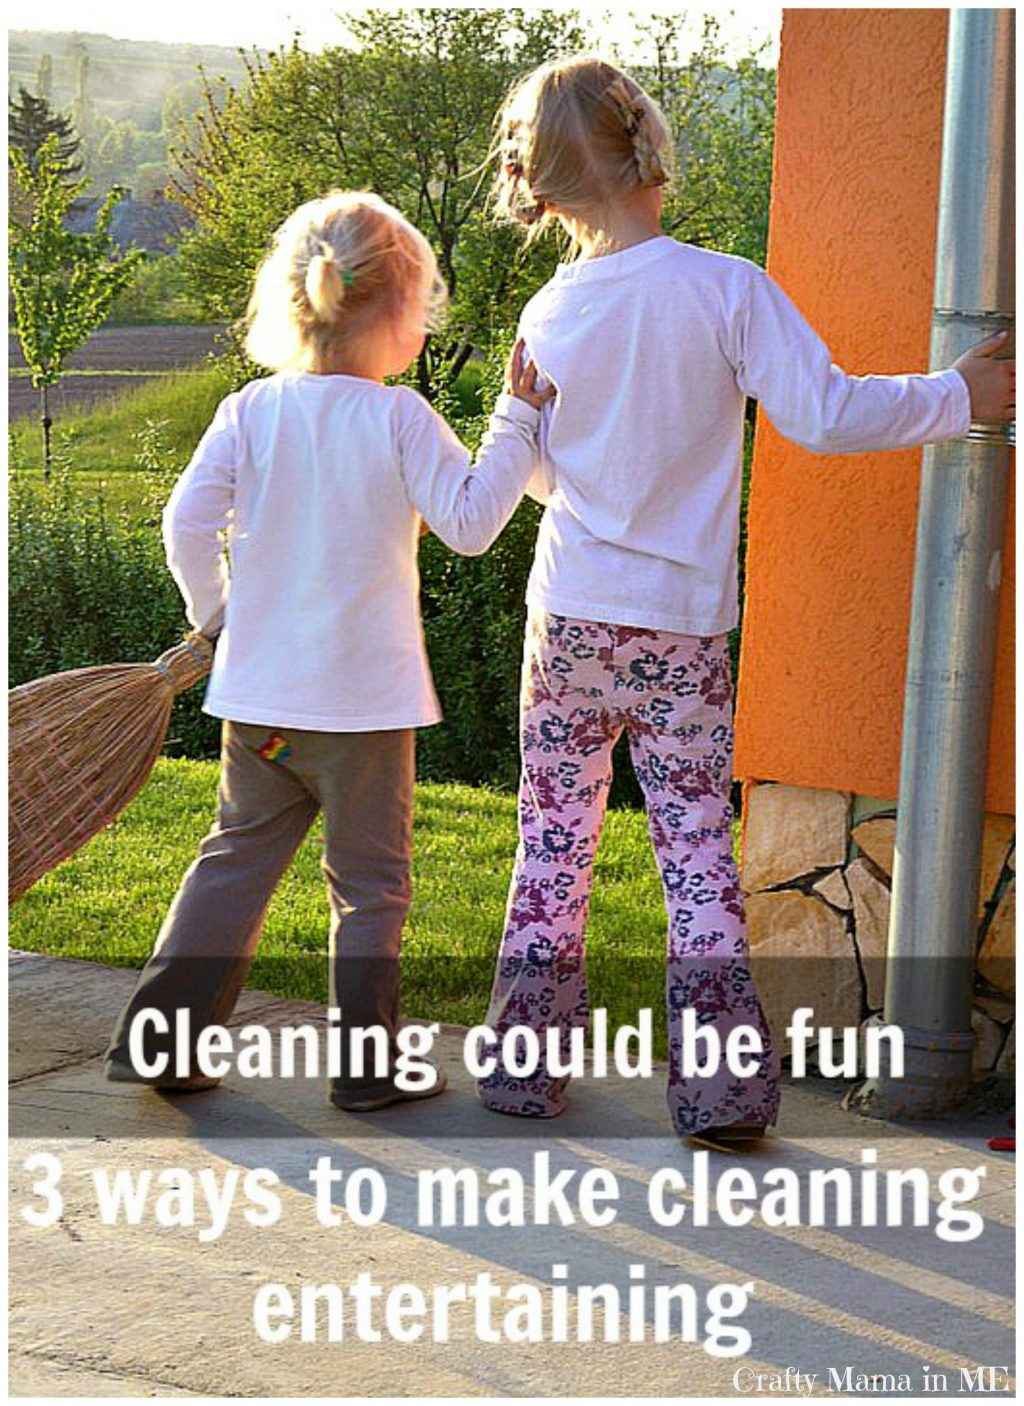 Cleaning Could be Fun - 3 Ways to make Cleaning Entertaining